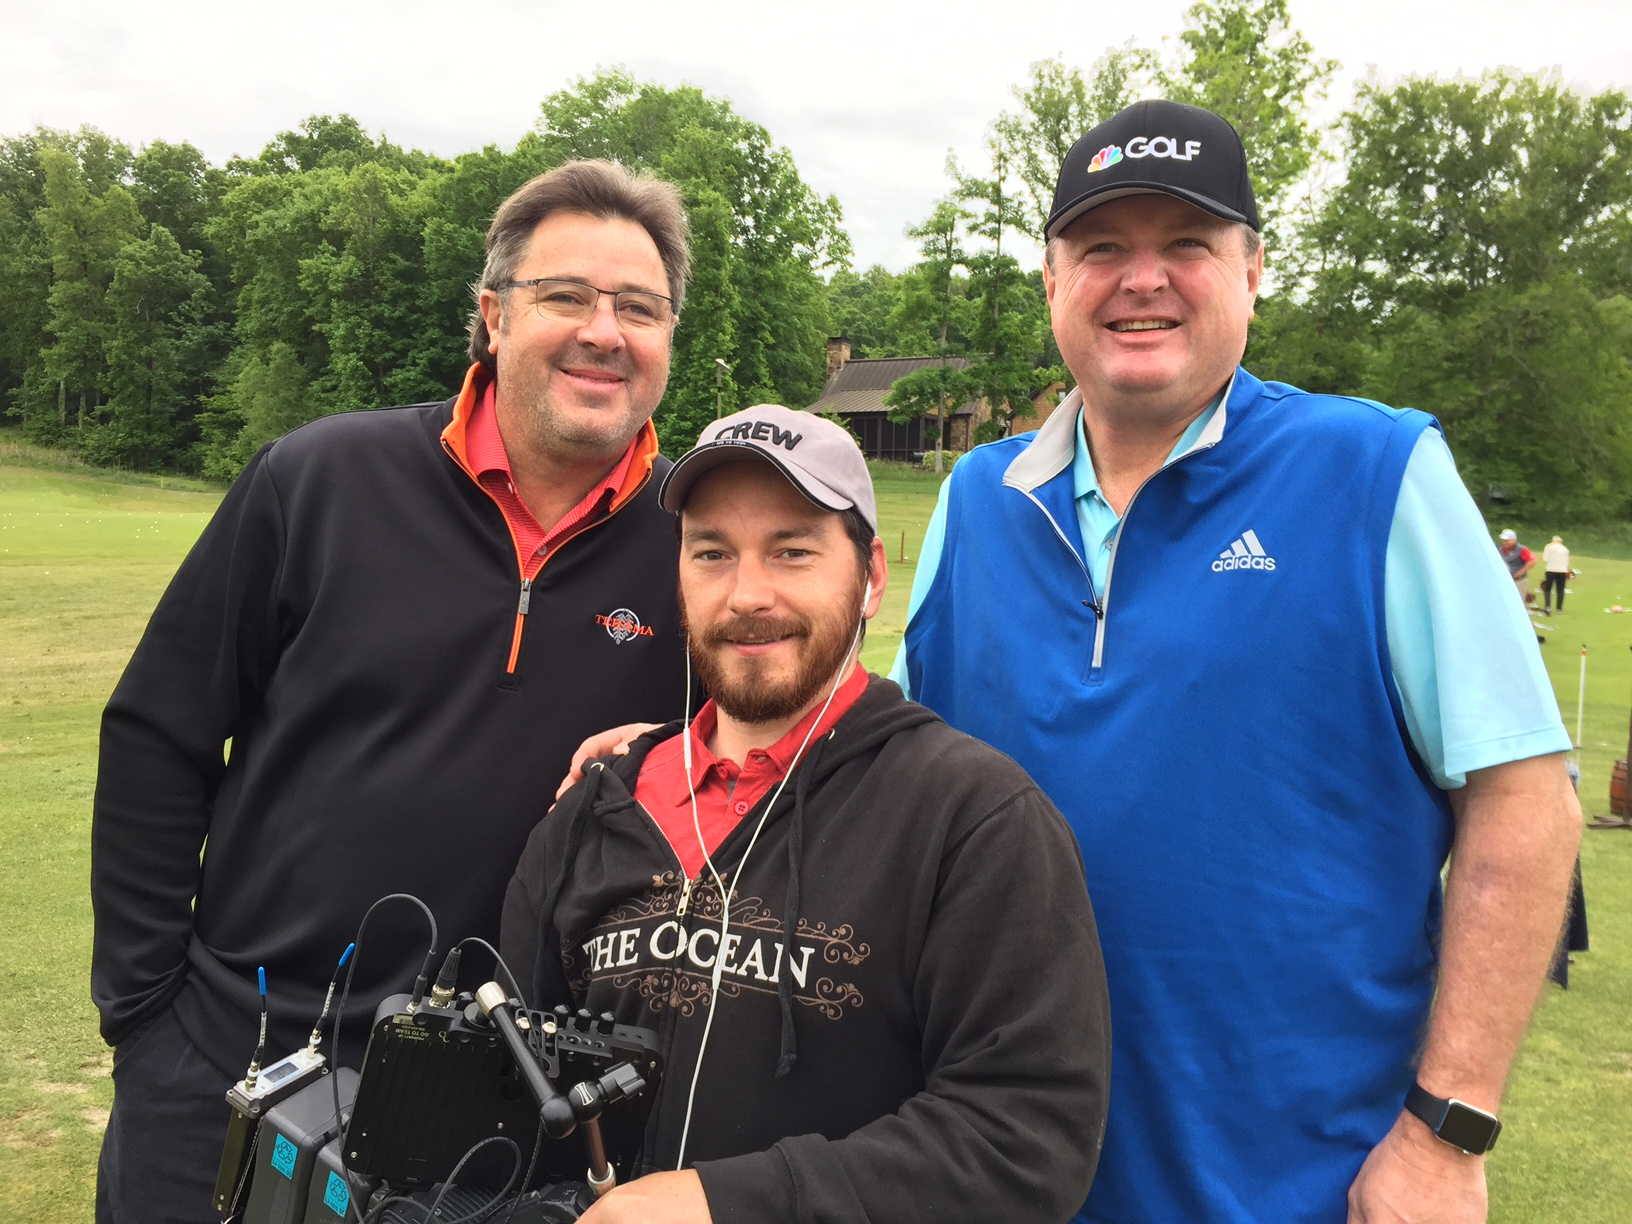 IMG 4704 Nashville Crews Swingin with Vince Gill for the Golf Channel